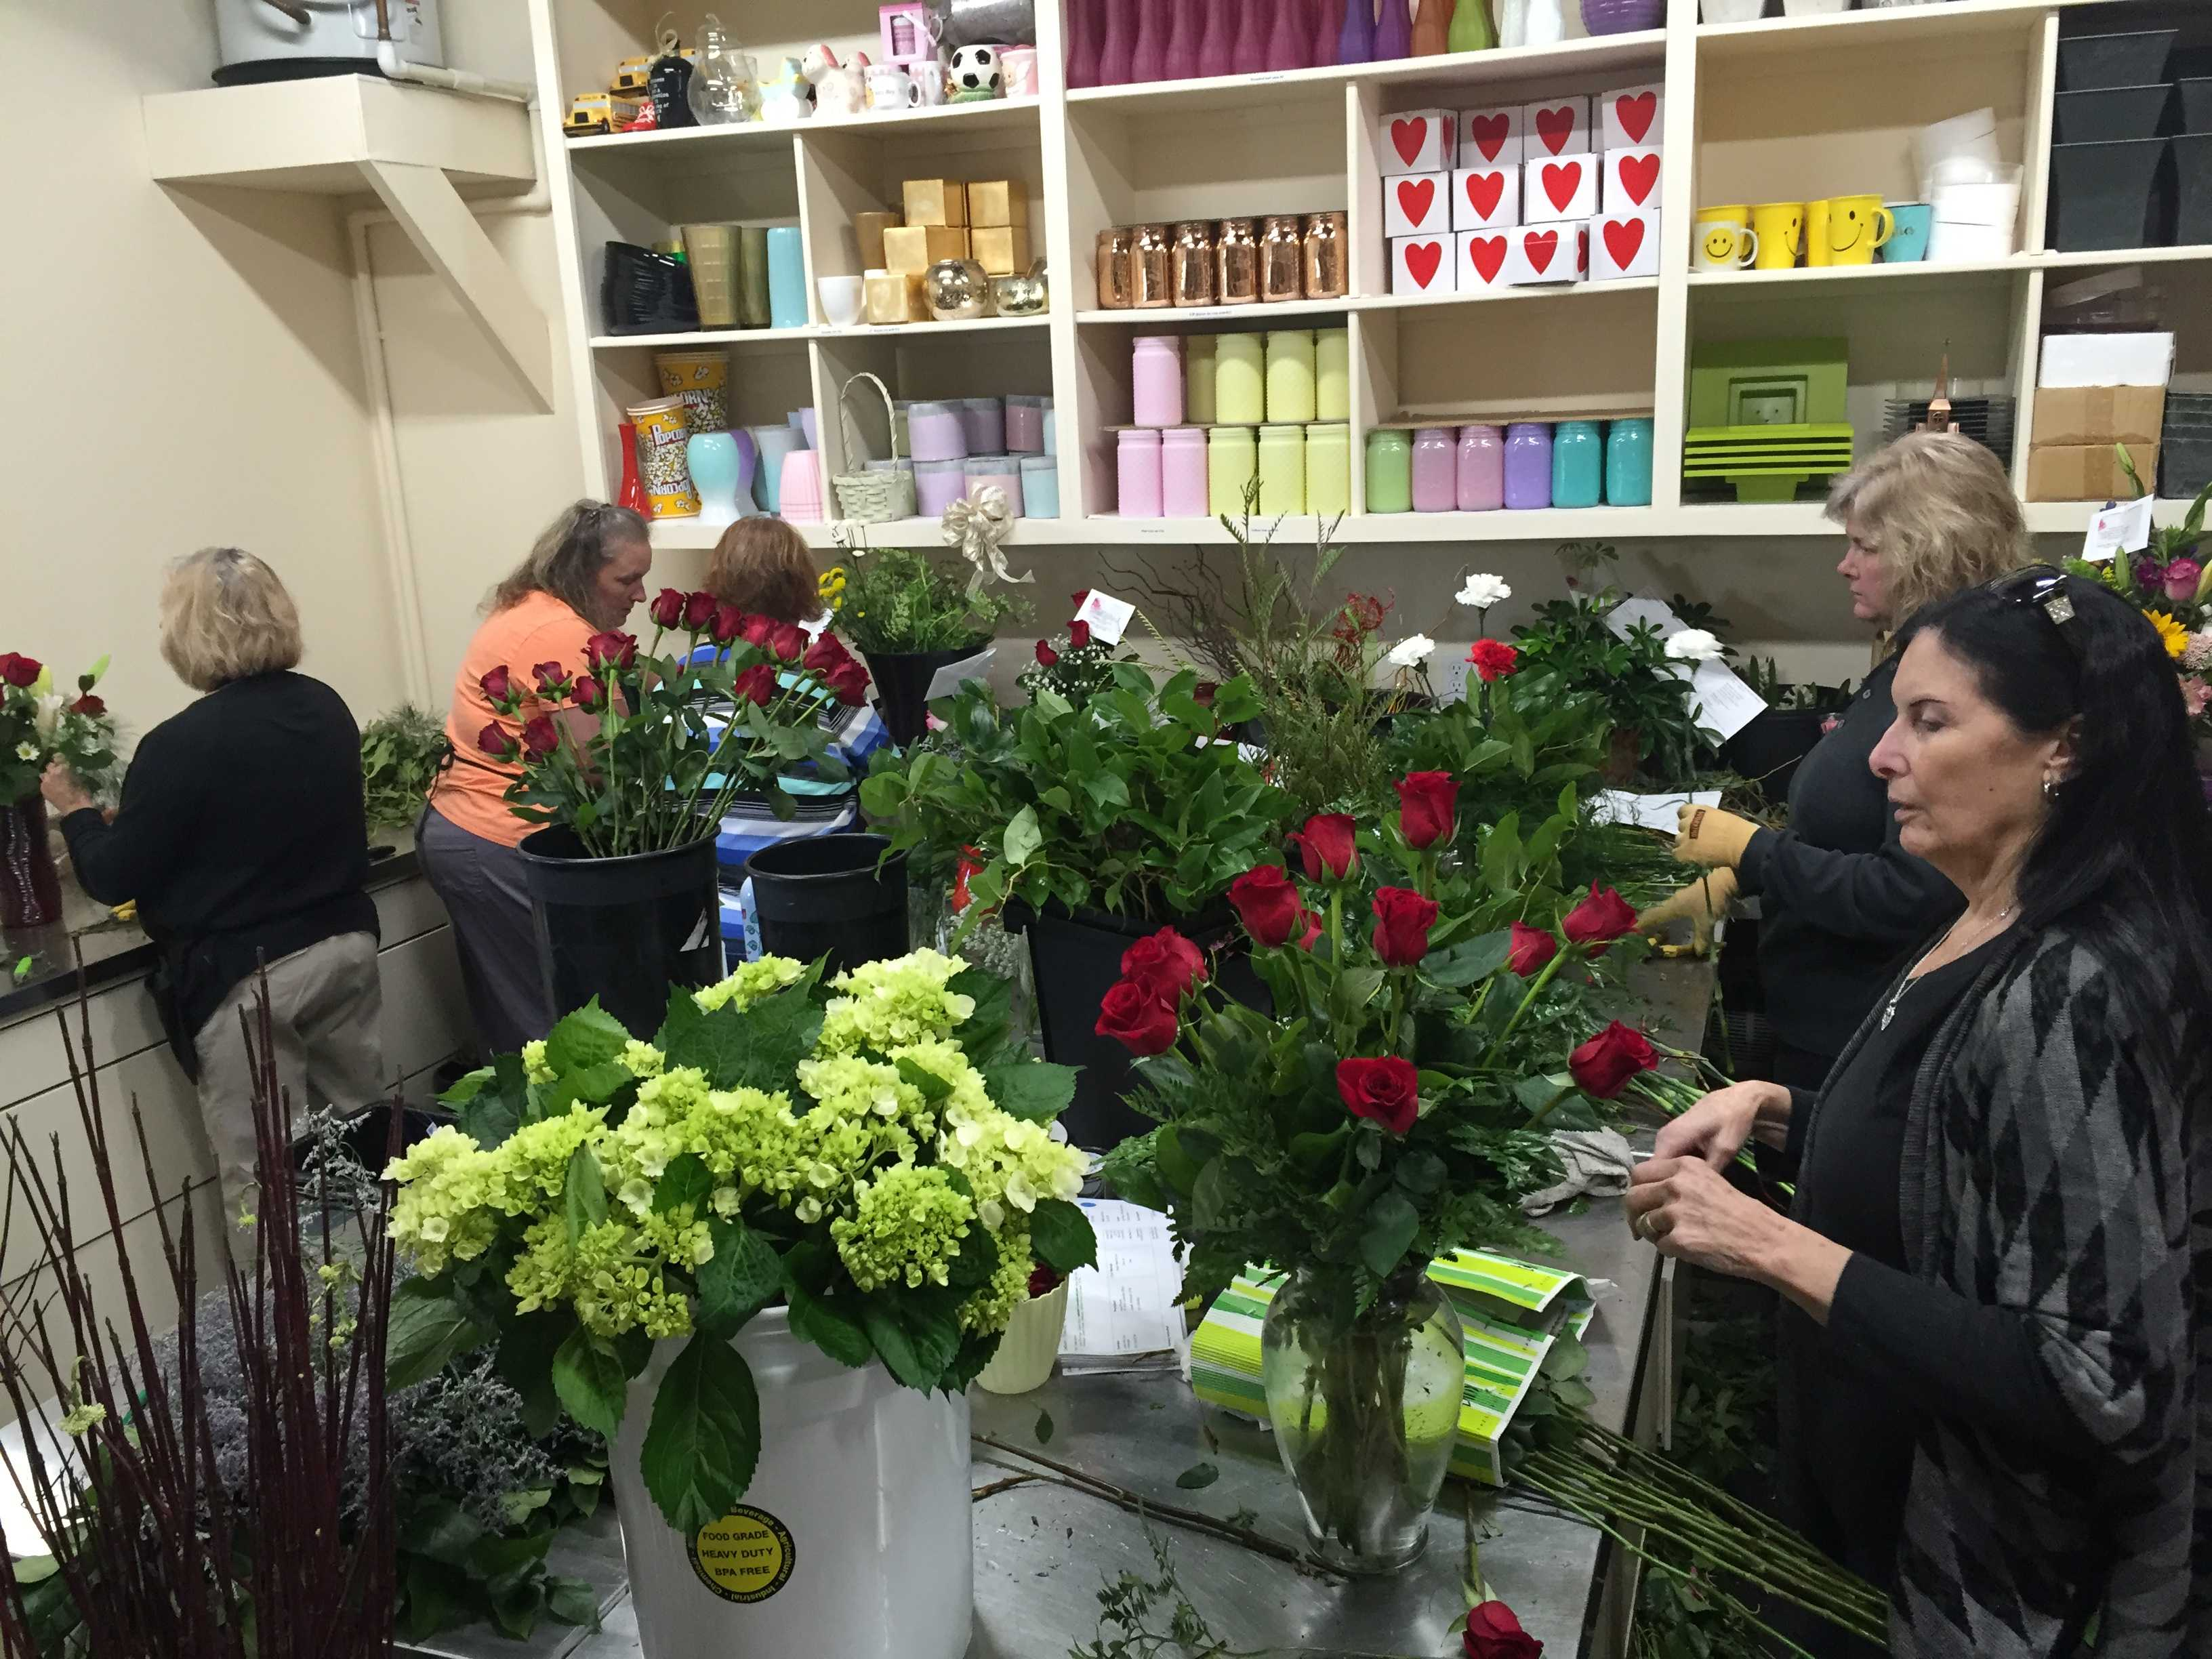 Florists spend months preparing for Valentine's Day rush